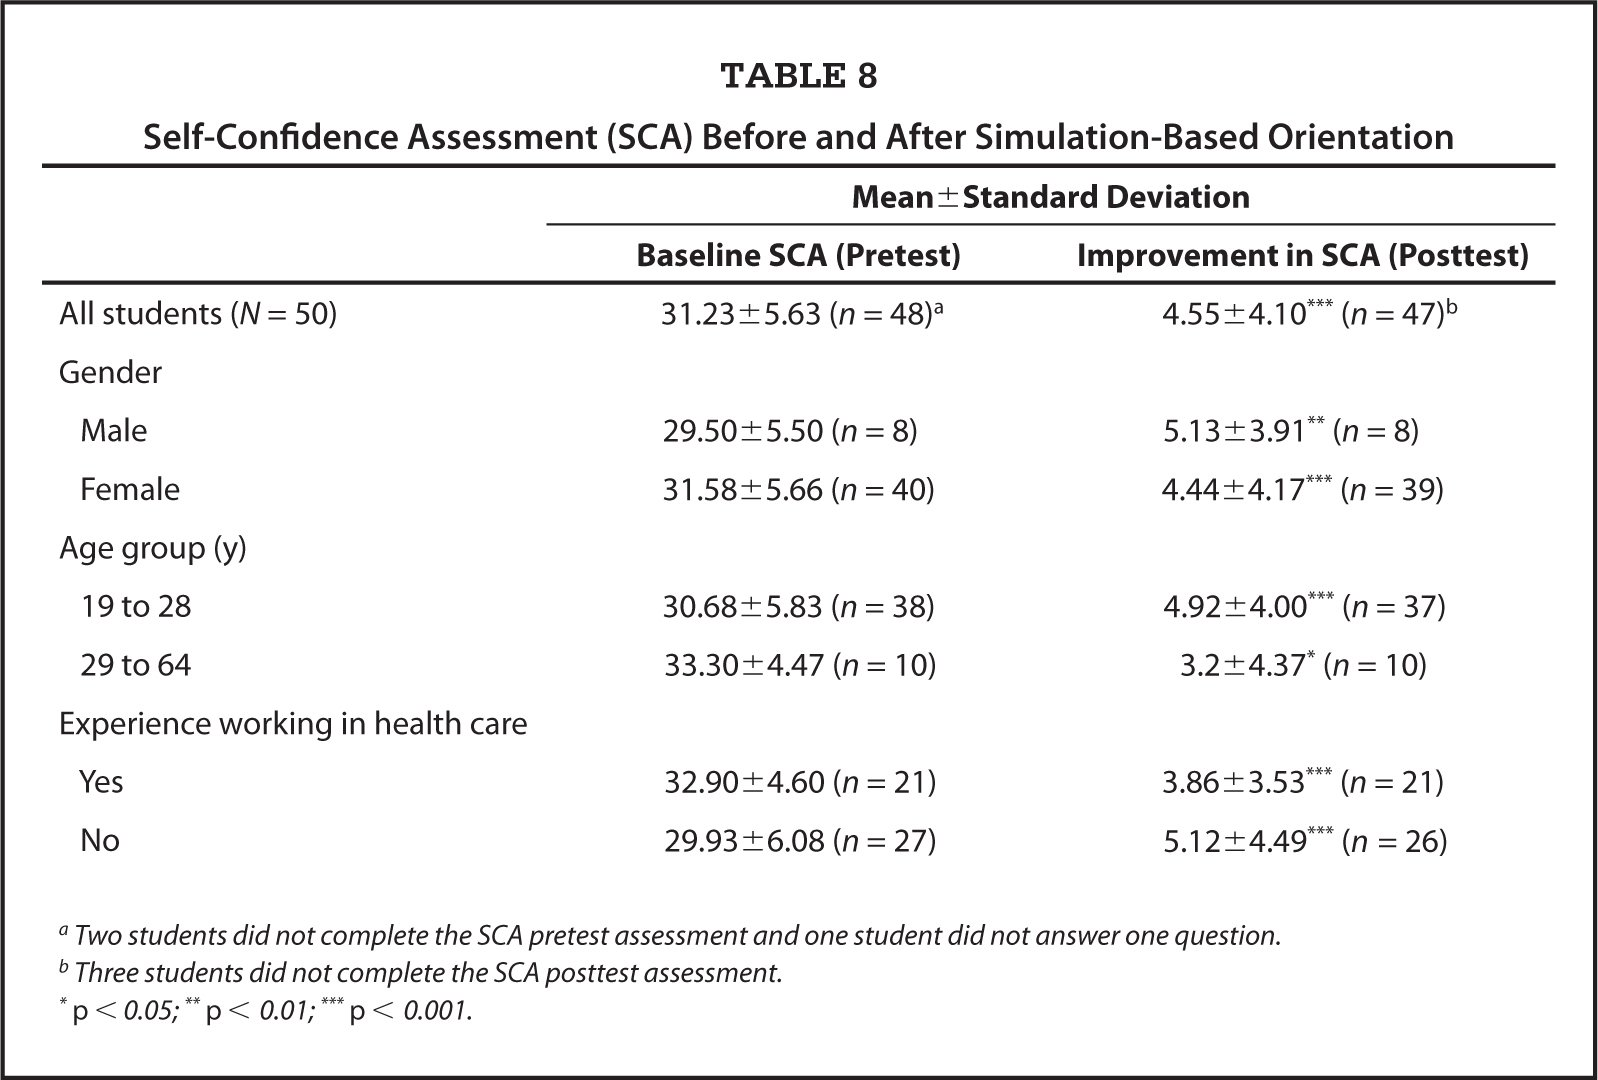 Self-Confidence Assessment (SCA) Before and After Simulation-Based Orientation